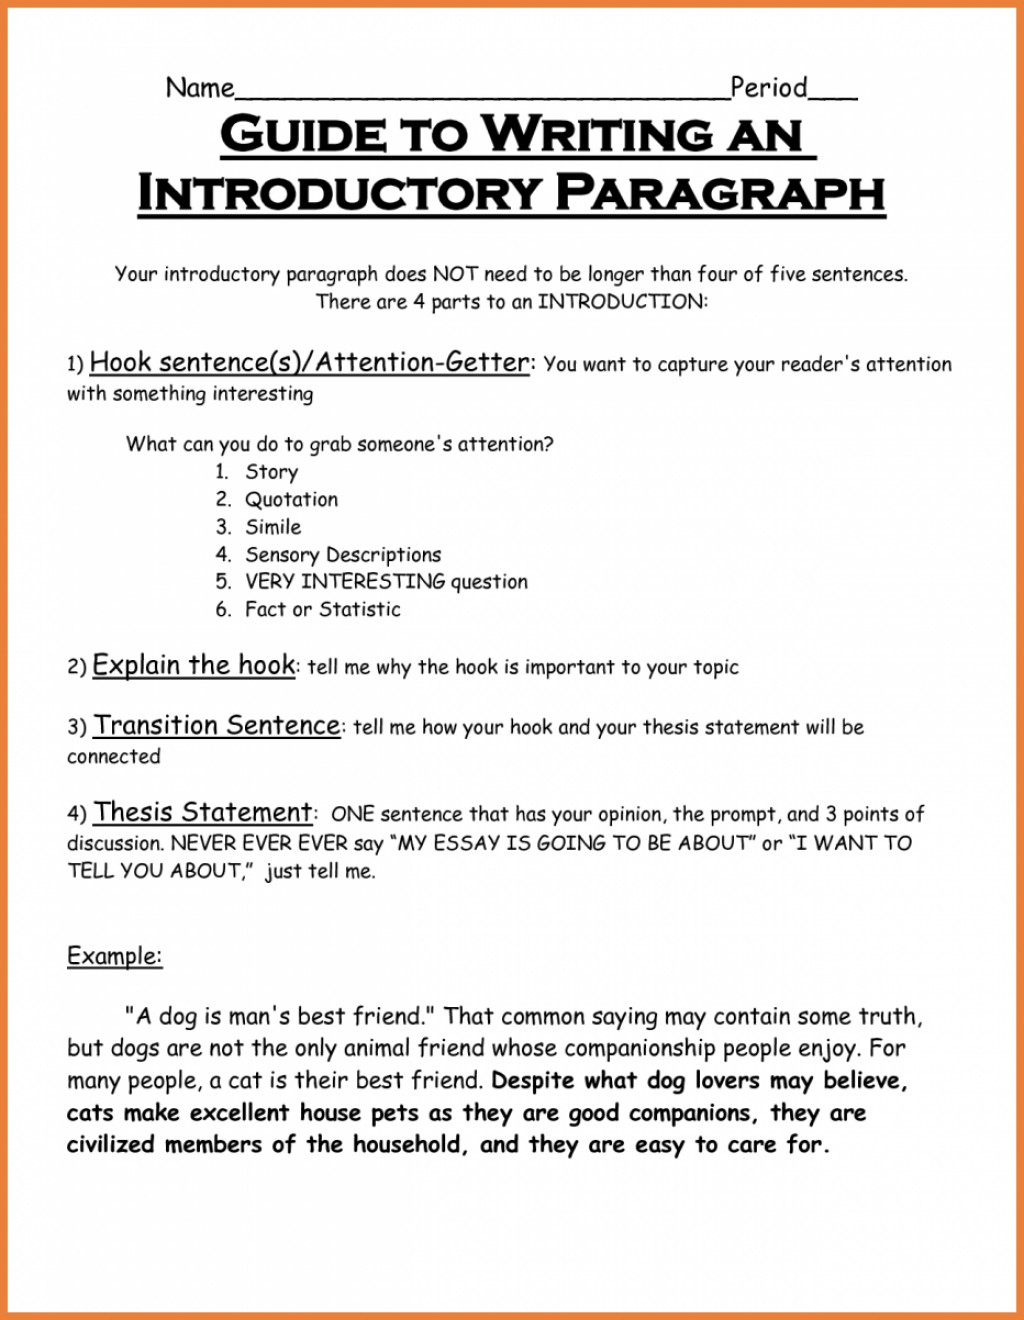 020 Introaph Research Paper Example Of Good Introduction To An Essay Extraordinary Template Frightening A Apa Pdf Large